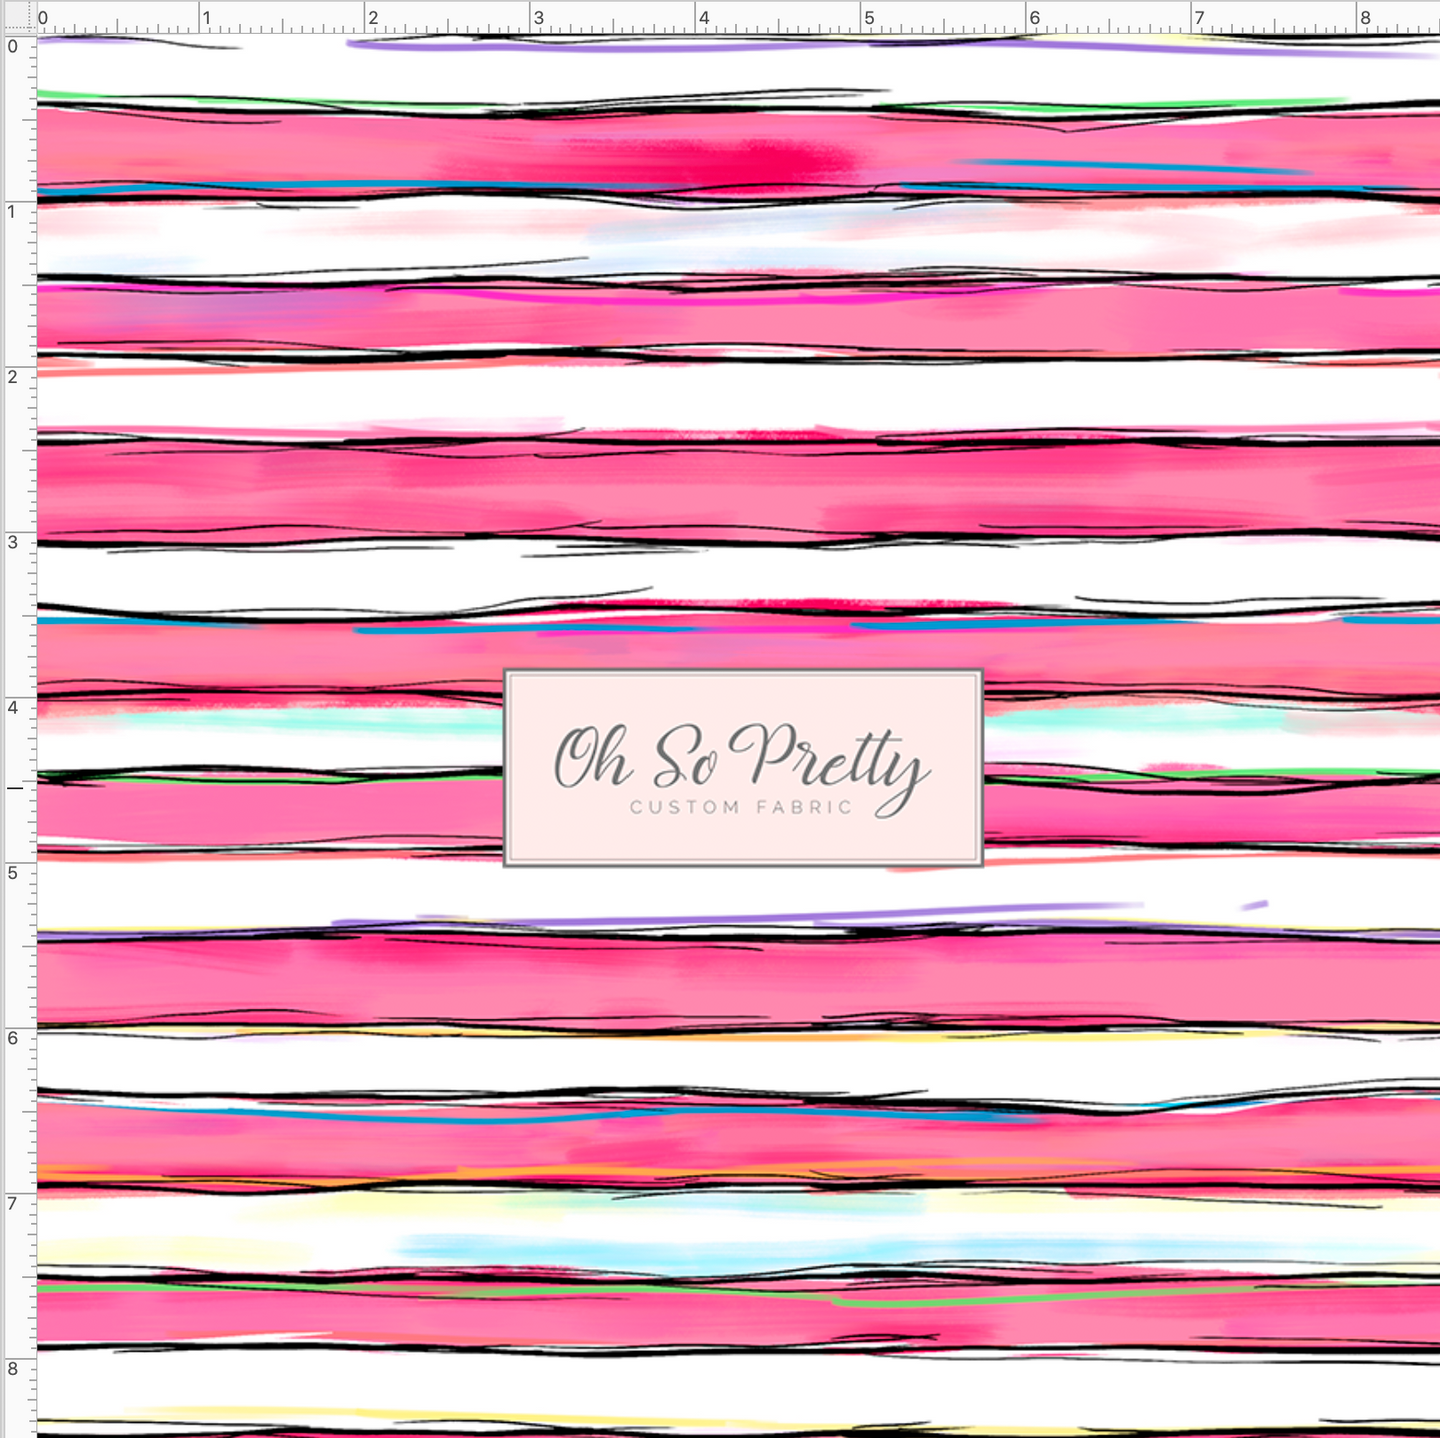 CATALOG - PREORDER R42 - Soar - Pink and White Stripe